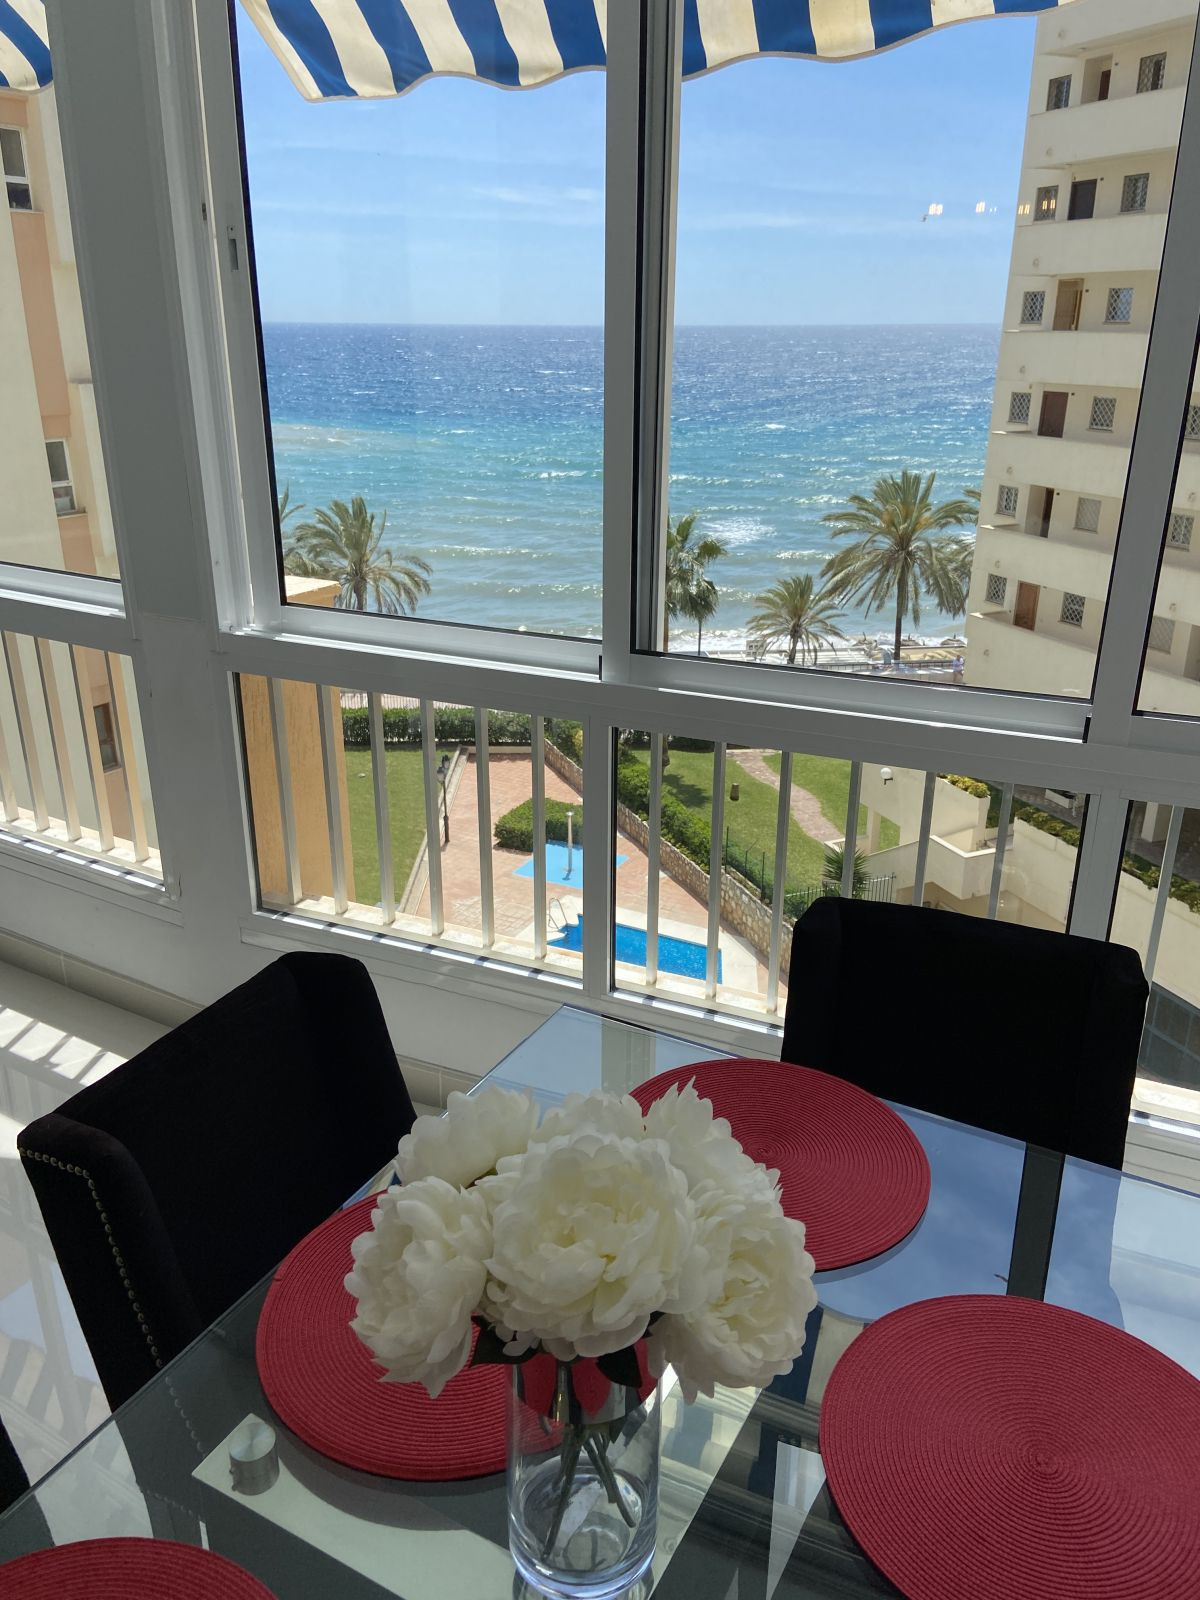 1 Bedroom Middle Floor Apartment For Sale Marbella